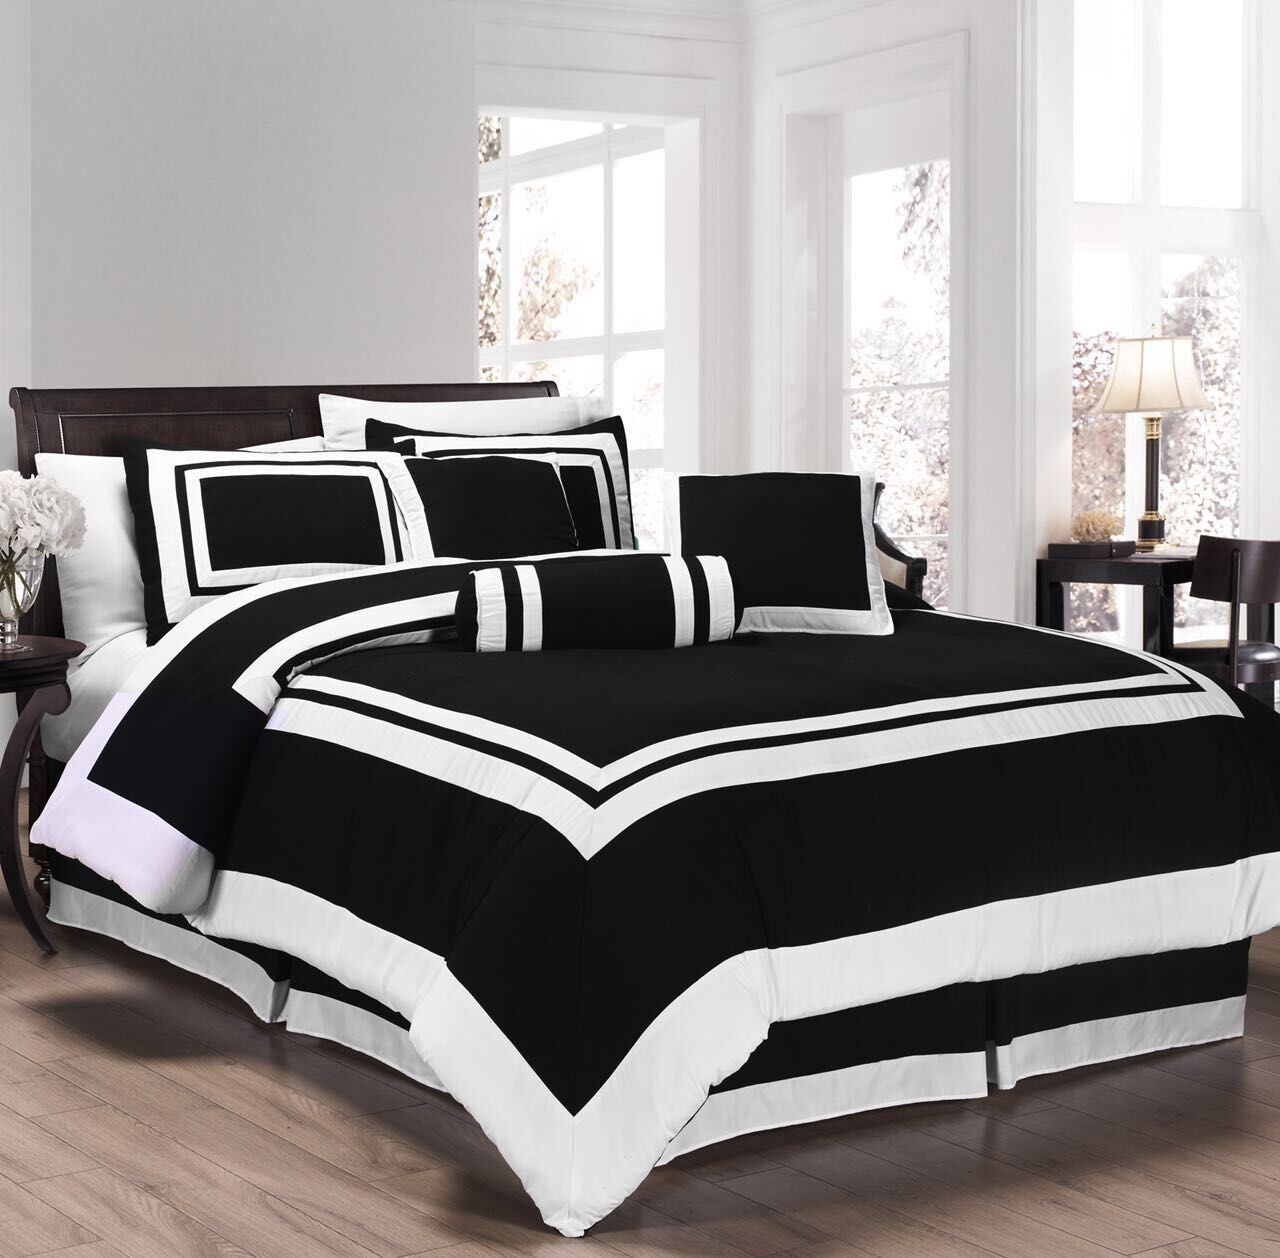 Chezmoi Collection 7 Pieces Caprice Black White Square Pattern Hotel Bedding Comforter Set Queen